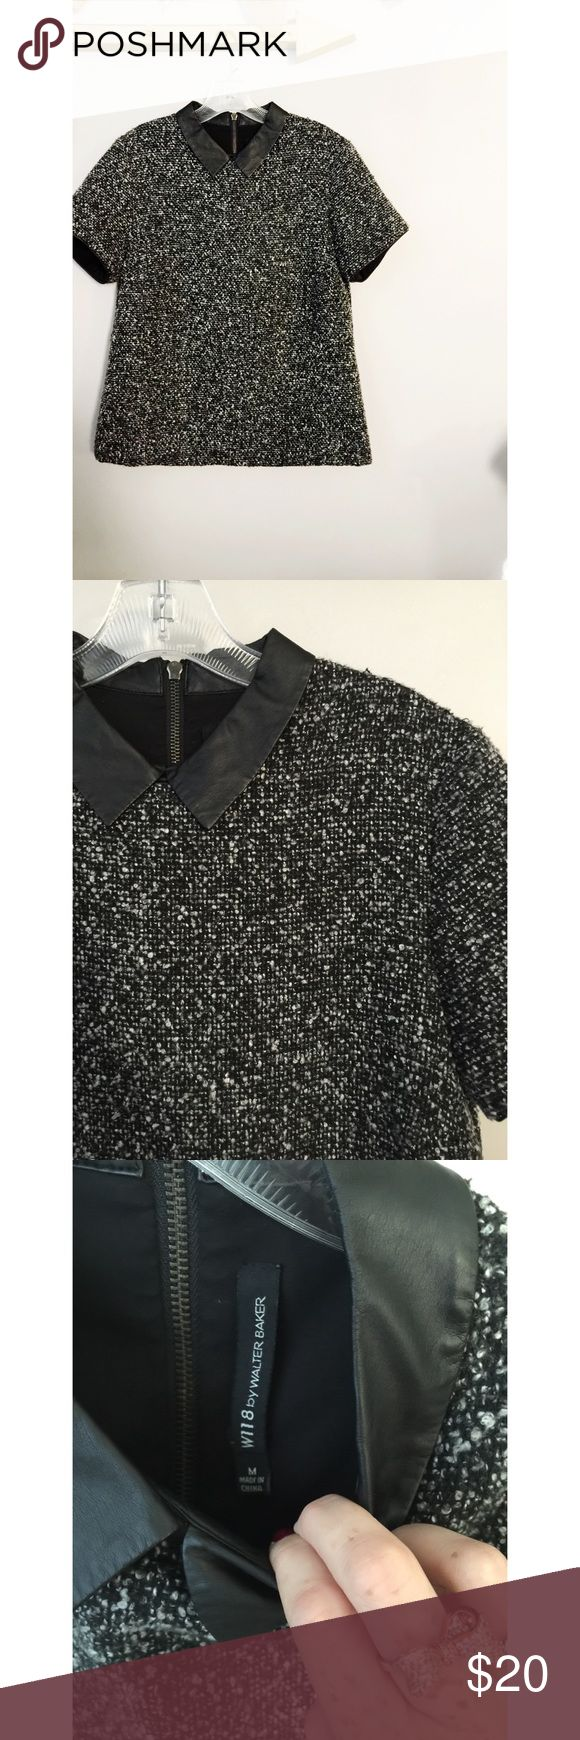 W118 by Walter Baker Top W118 by Walter Baker Top.  Great condition, heavy quality material.  Women's size medium.  Grey and black.  True to size. W118 by Walter Baker Tops Blouses